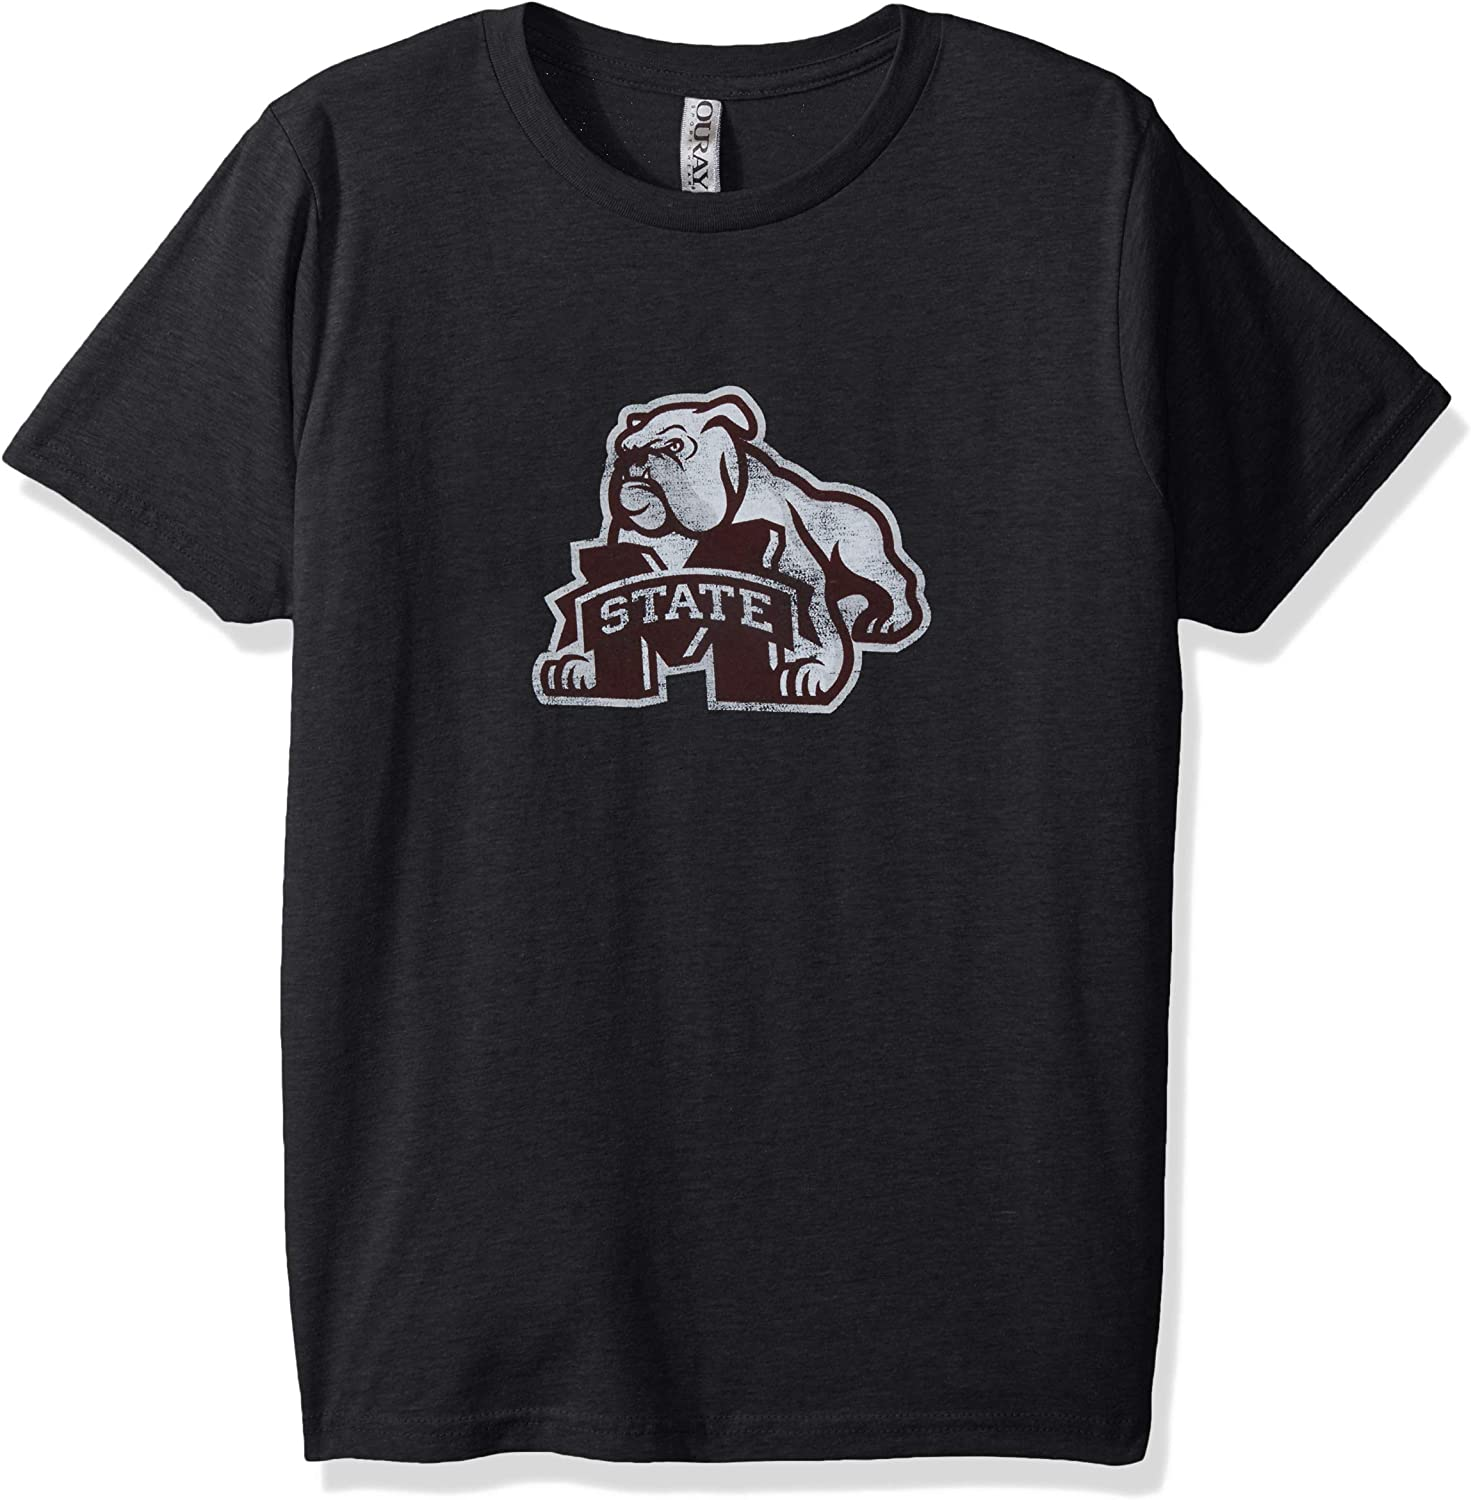 NCAA Mississippi State Bulldogs Youth Vintage Sheer Short Sleeve Tee Small Charcoal